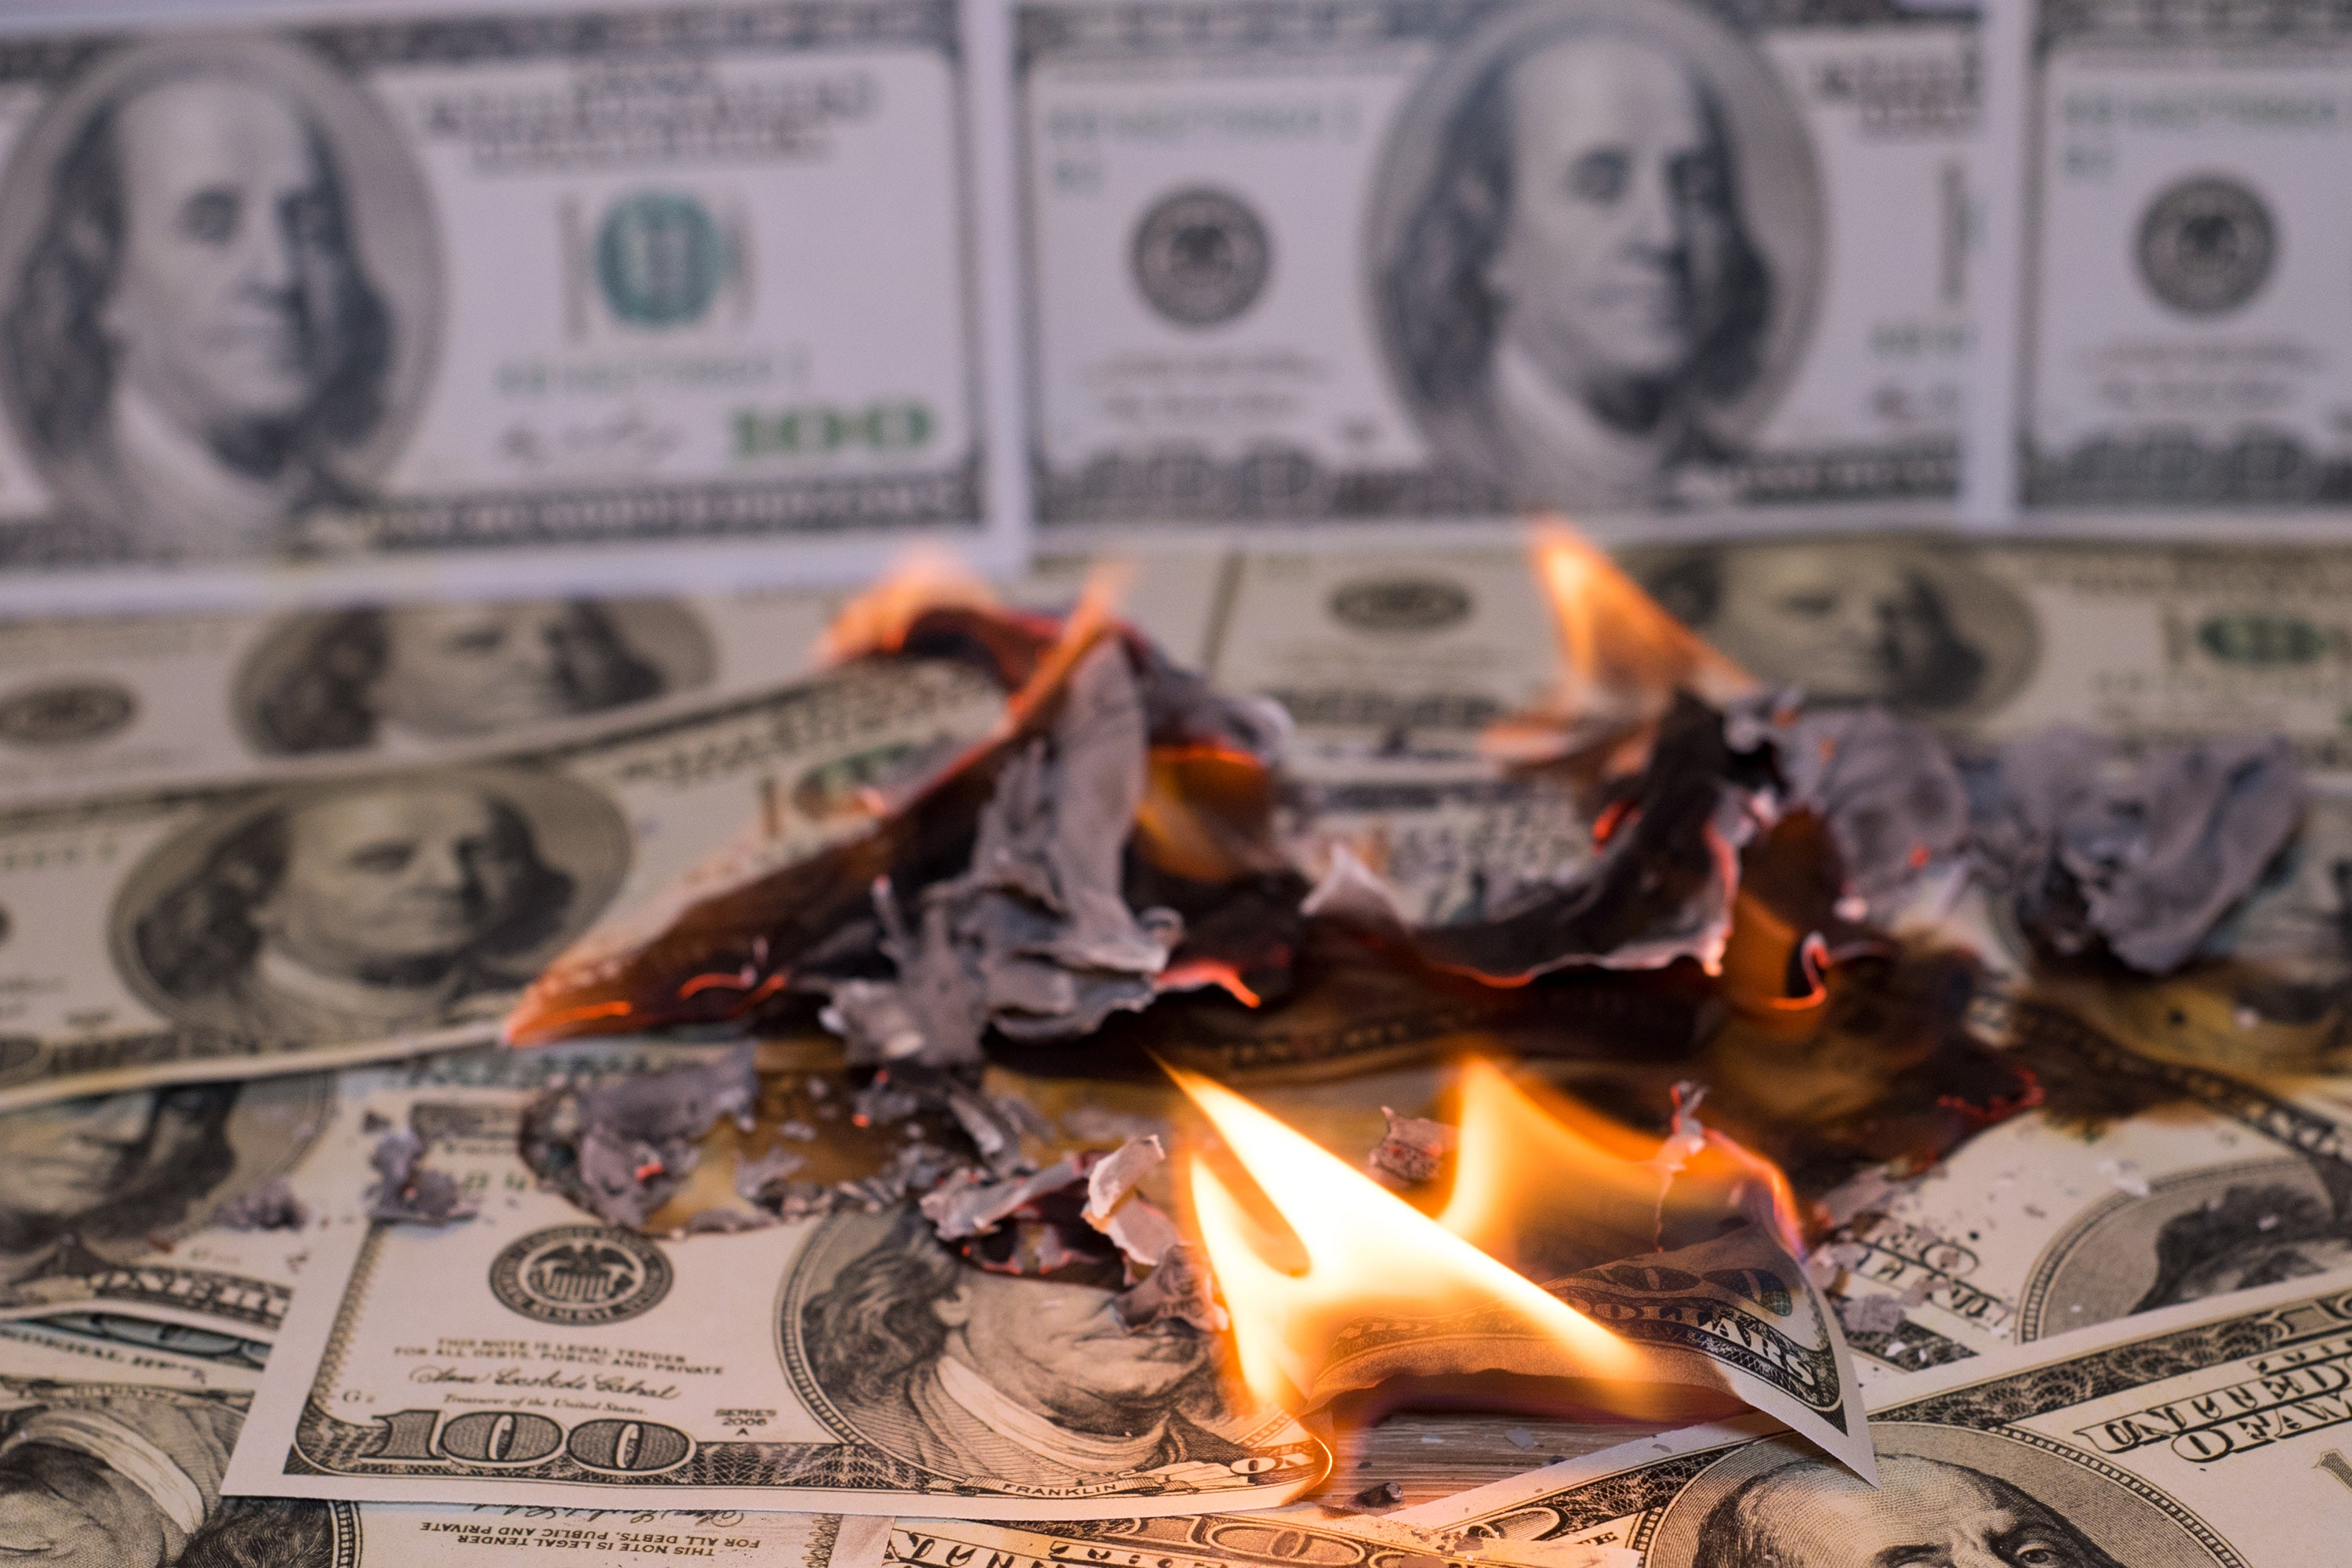 A small pile of hundred dollar bills on fire, with hundred dollar bills being used as wallpaper in the background.